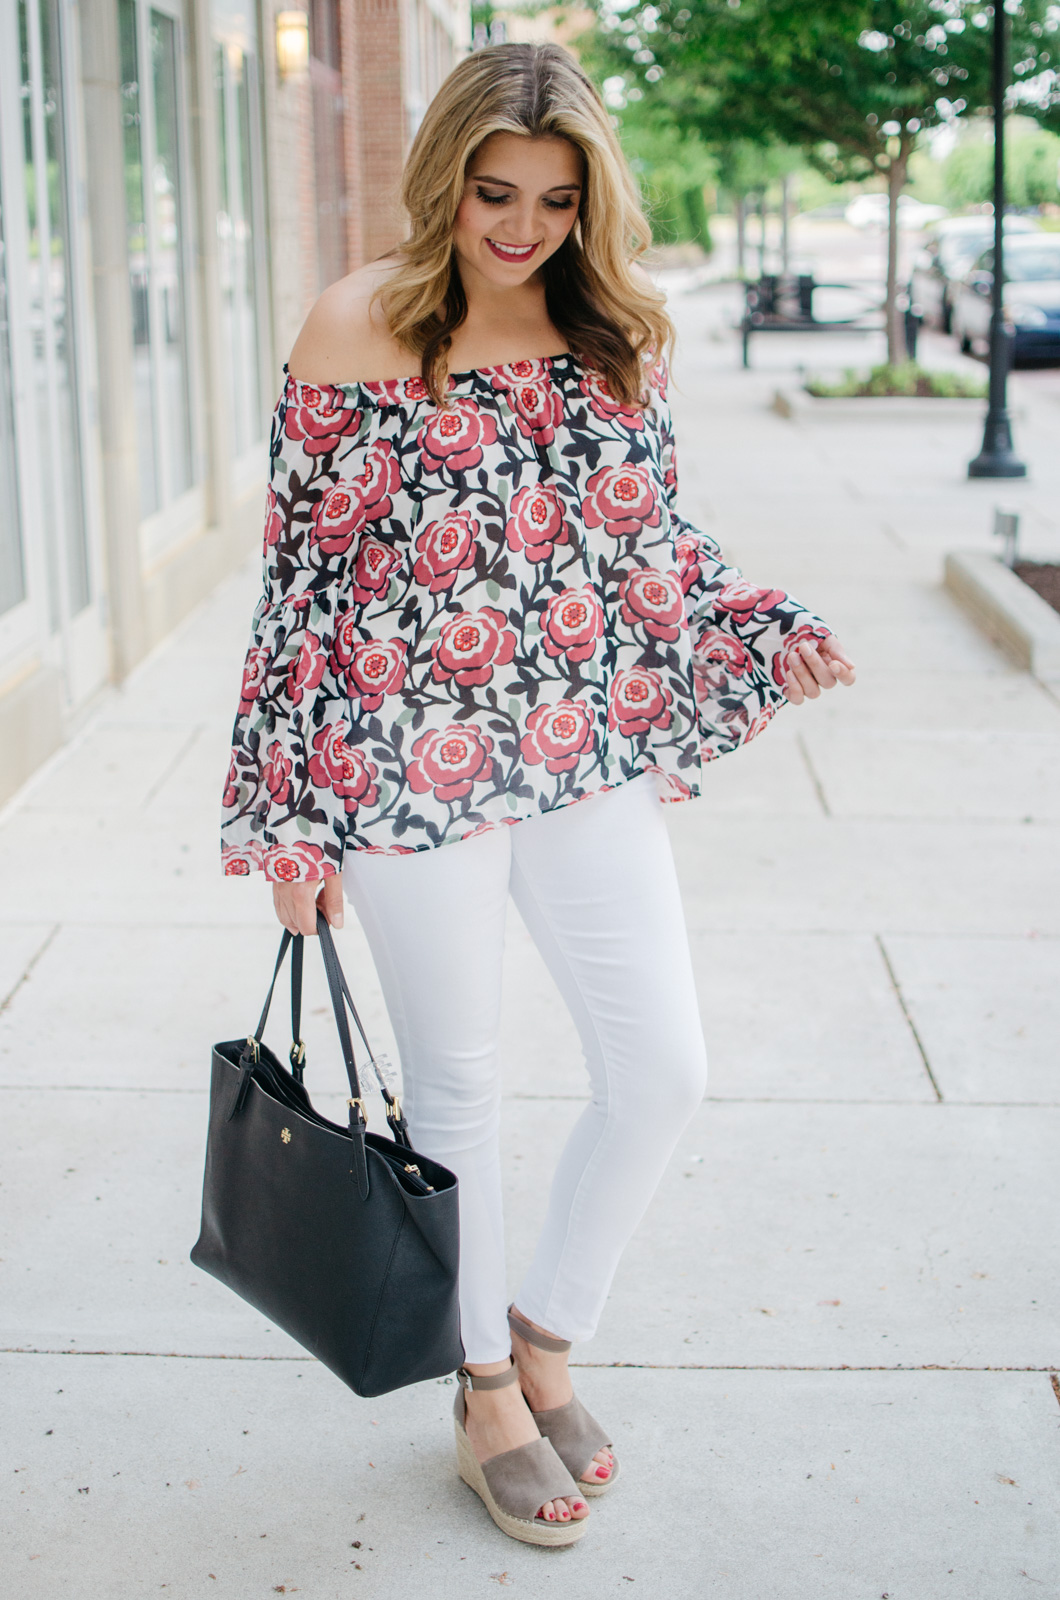 floral print bell sleeve top outfit - | For more of the best Spring outfits, head to bylaurenm.com!